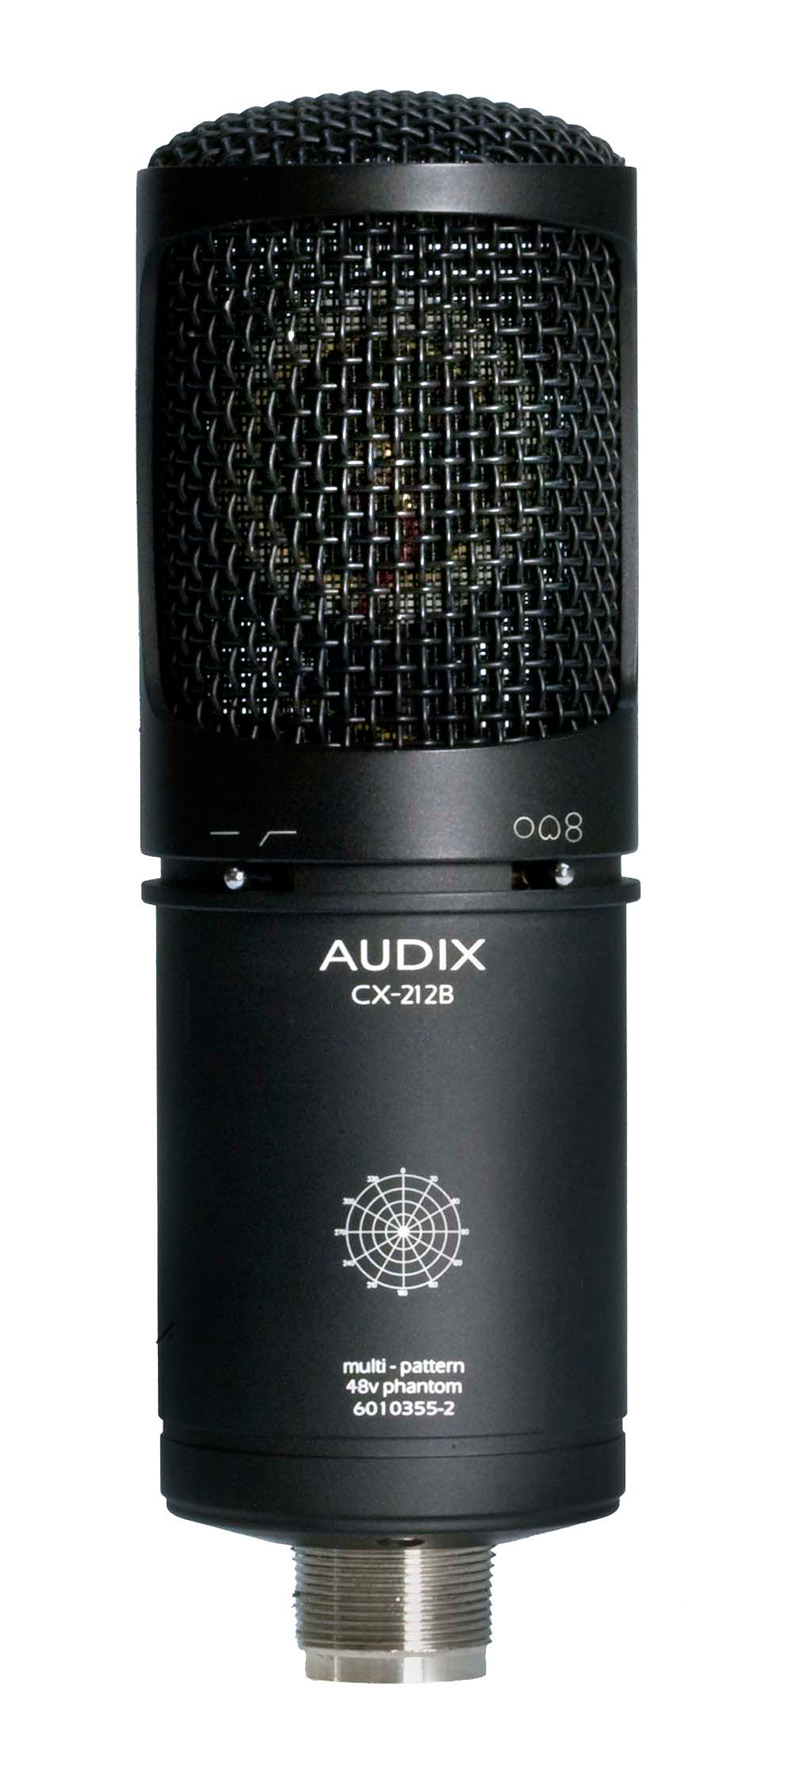 2 x CX-212B's (room mics)